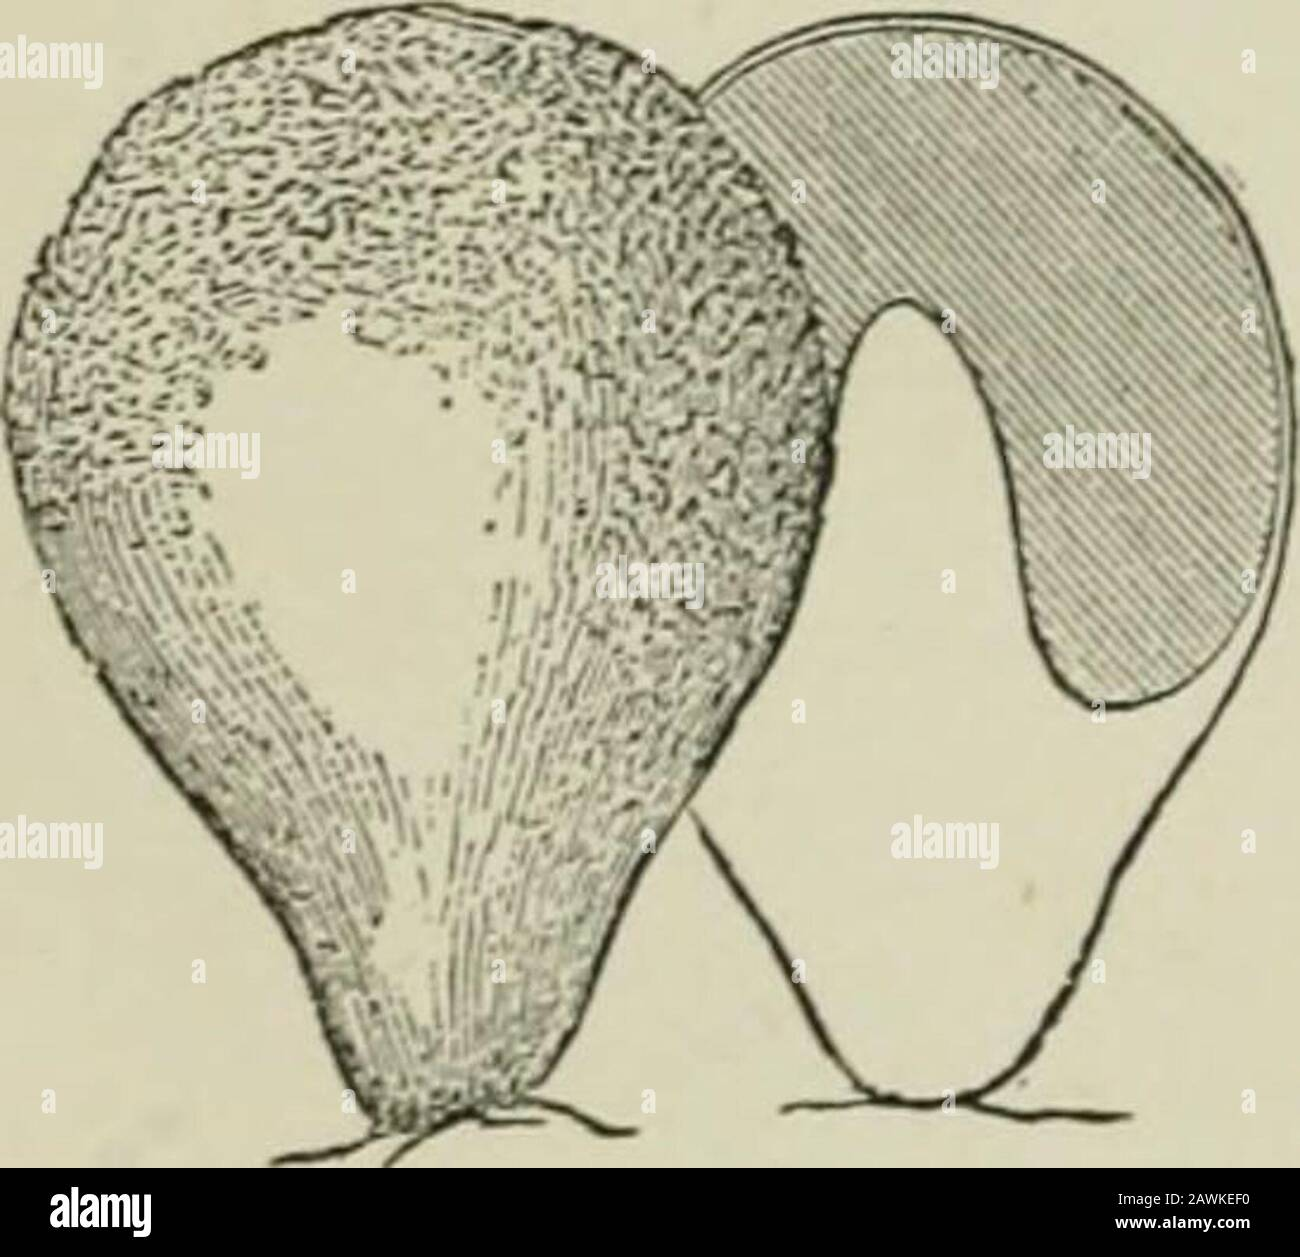 Introduction to the study of fungi : their organography, classification, and distribution for the use of collectors . riaceous by Polystictus, and theothers above named. The next form of receptacle to be adduced is the peridium,which completely encloses the reproductive organs, and mayalso be supported on a distinct carpophore, or it may be sessileon the mycelium, or invested by it, as in some subterraneanspecies. The Gastromycetes furnish this kind of receptacle, which is very often double, typicallyglobose, the outer coat or exoperidiumbeing a continuation of the cortexof the carpophore when Stock Photo